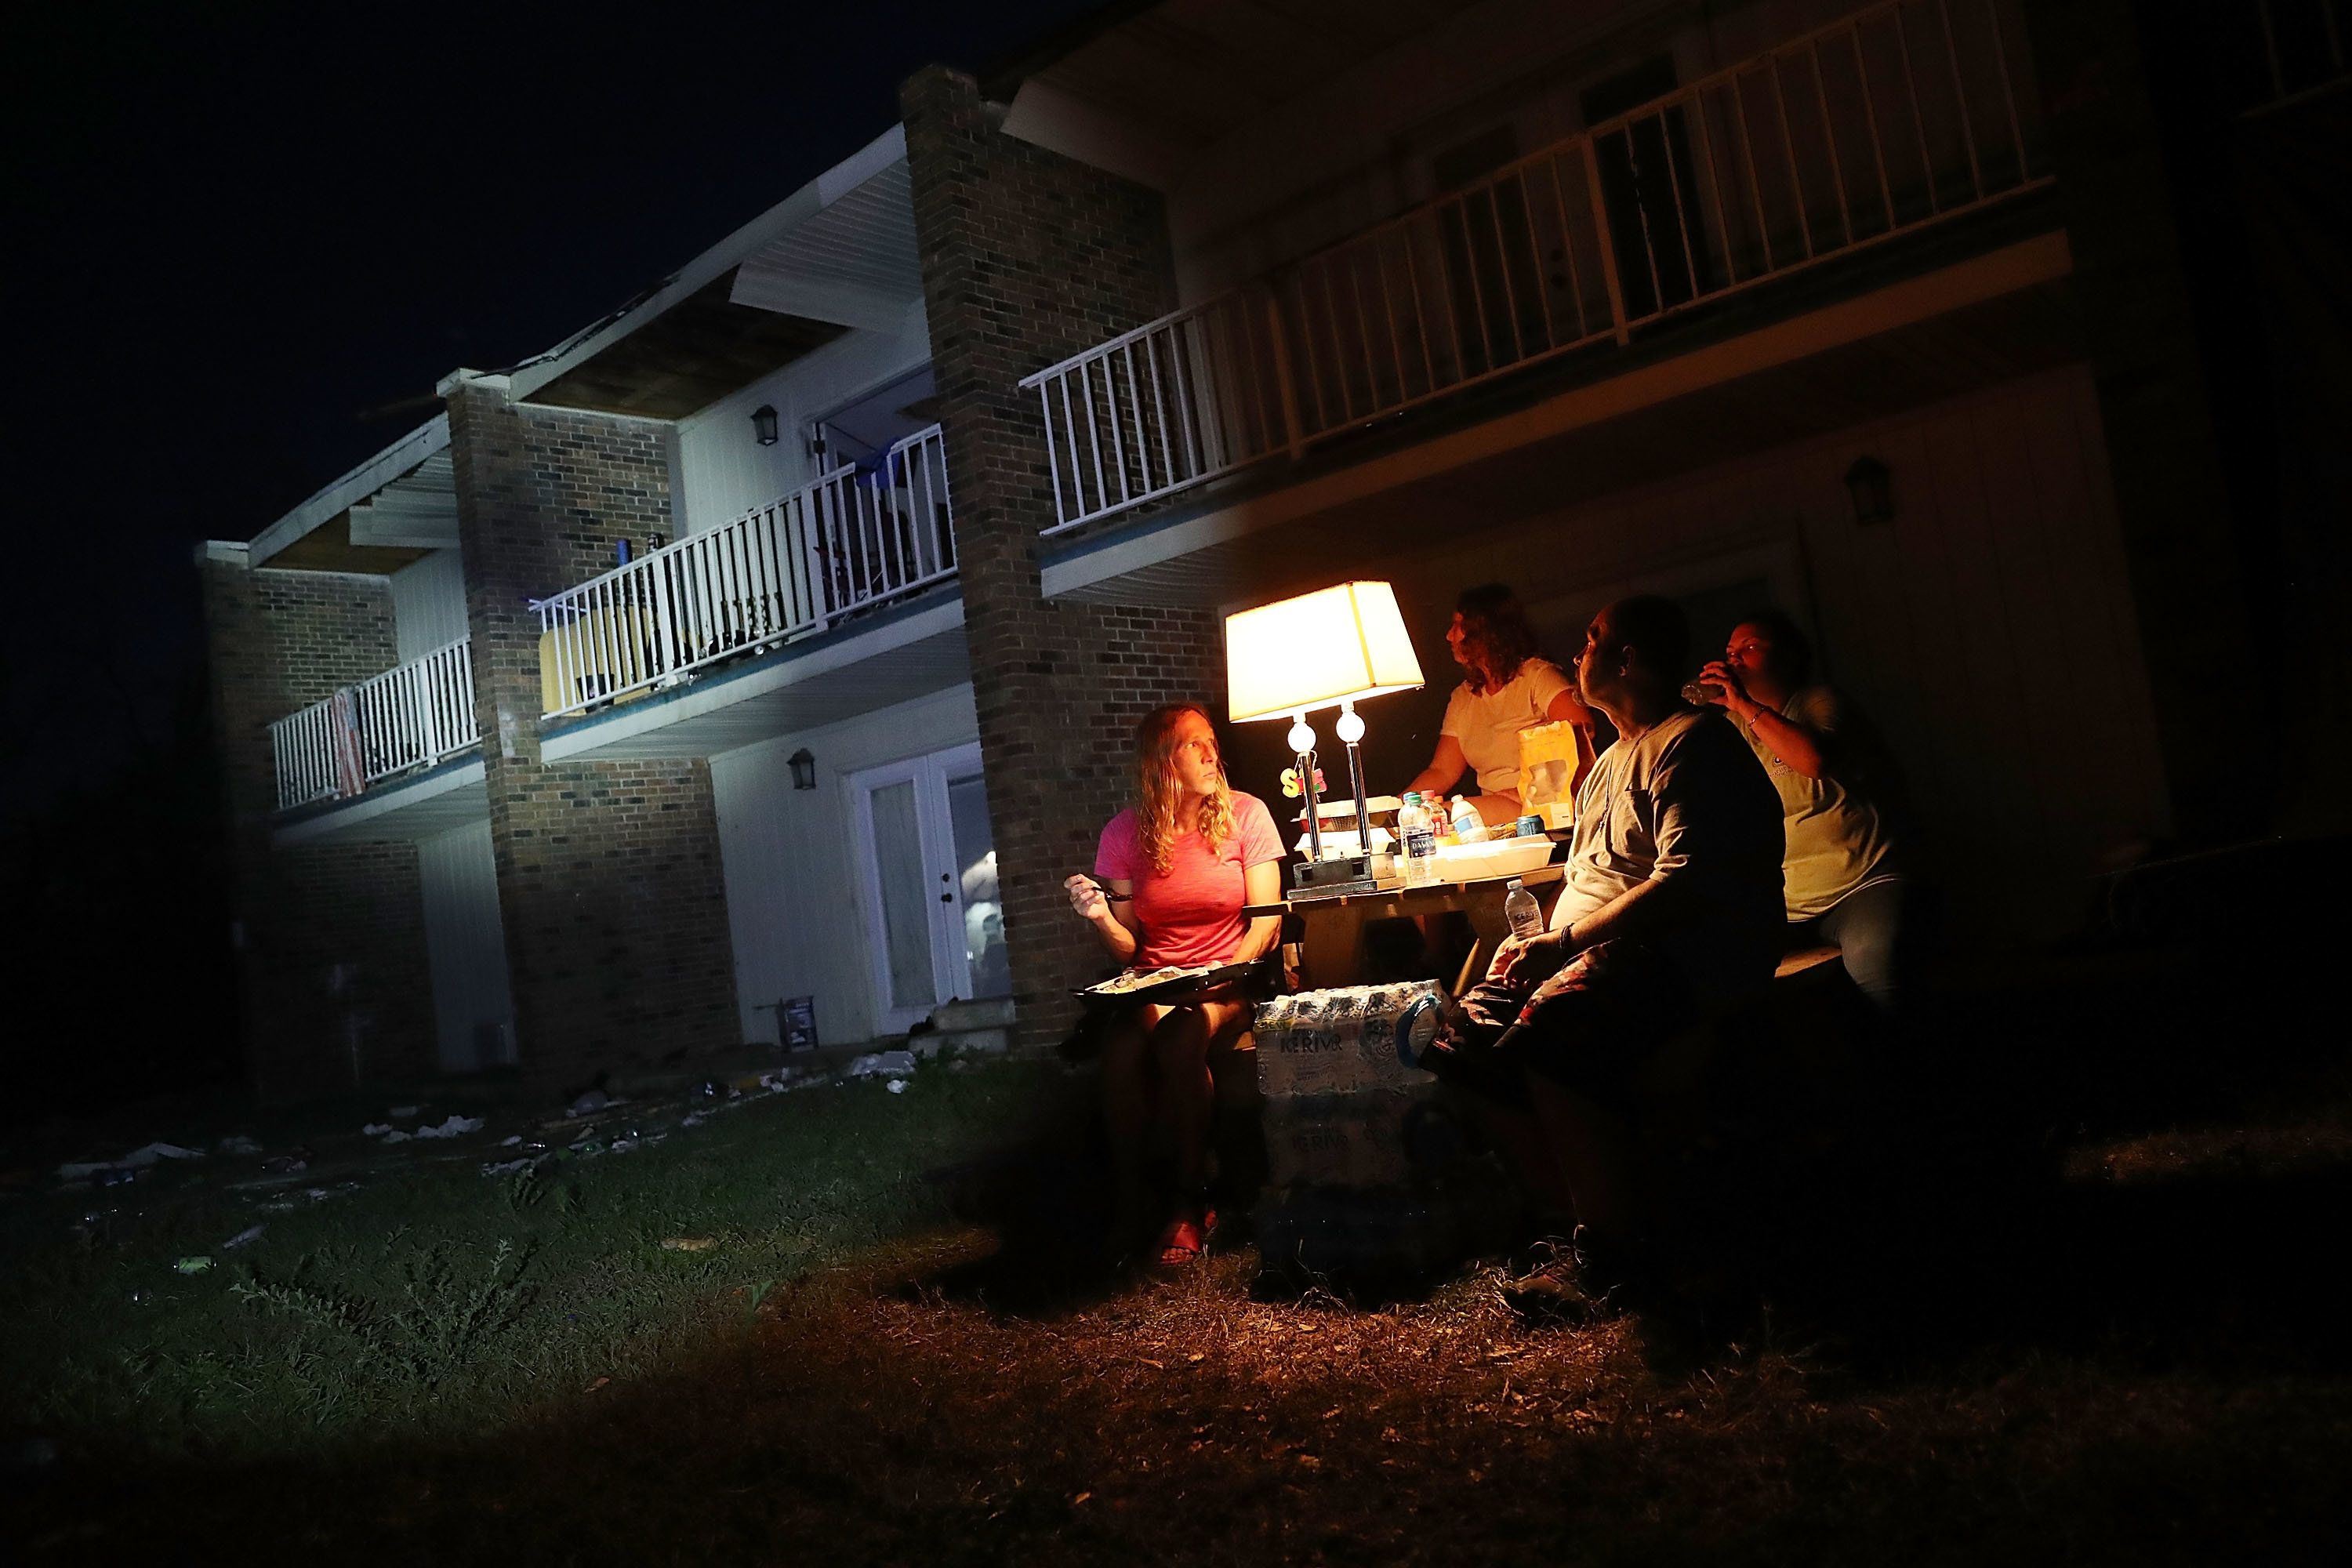 Danica Cherico and Shawn Gehlert use a generator to power a lamp outside their apartments, which lack electricity in Panama C